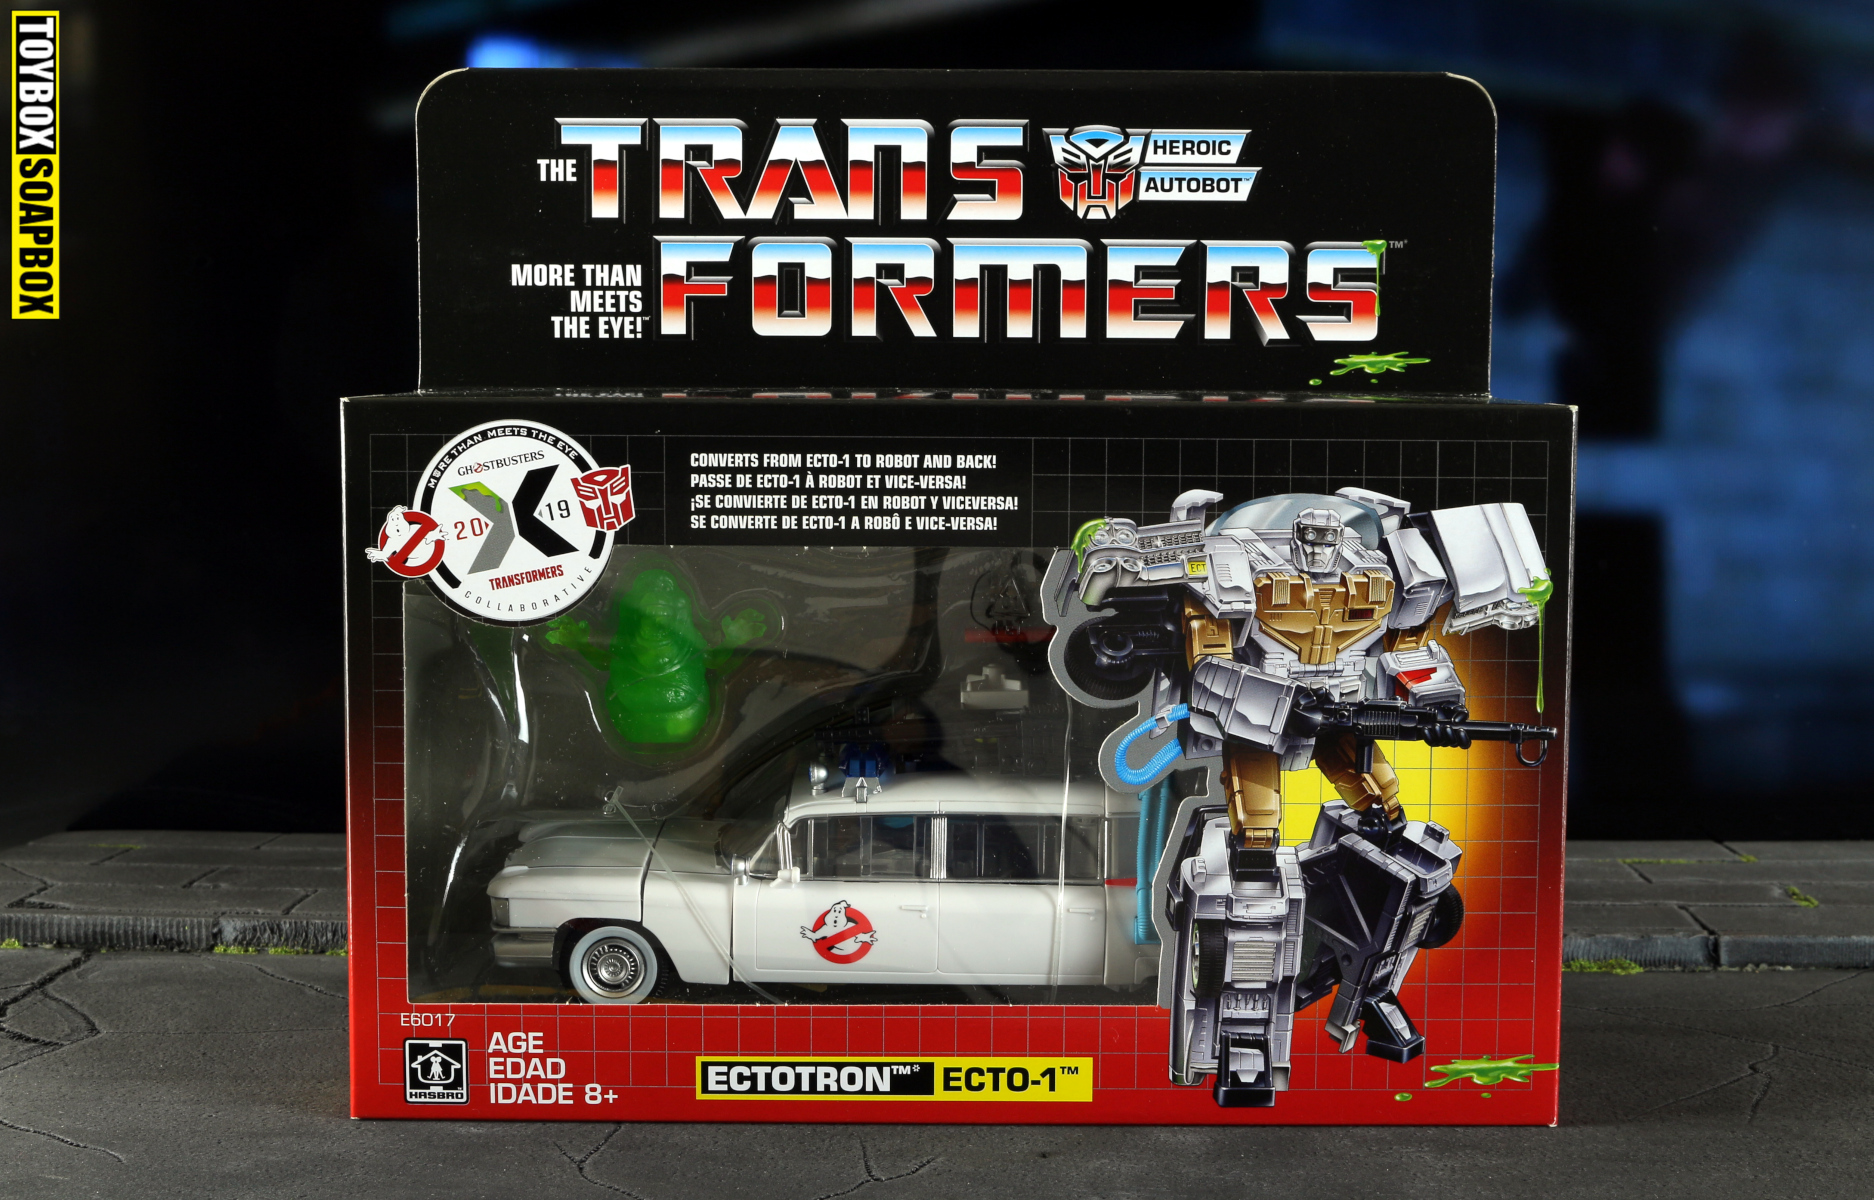 Ectotron ghostbusters transfromers box front